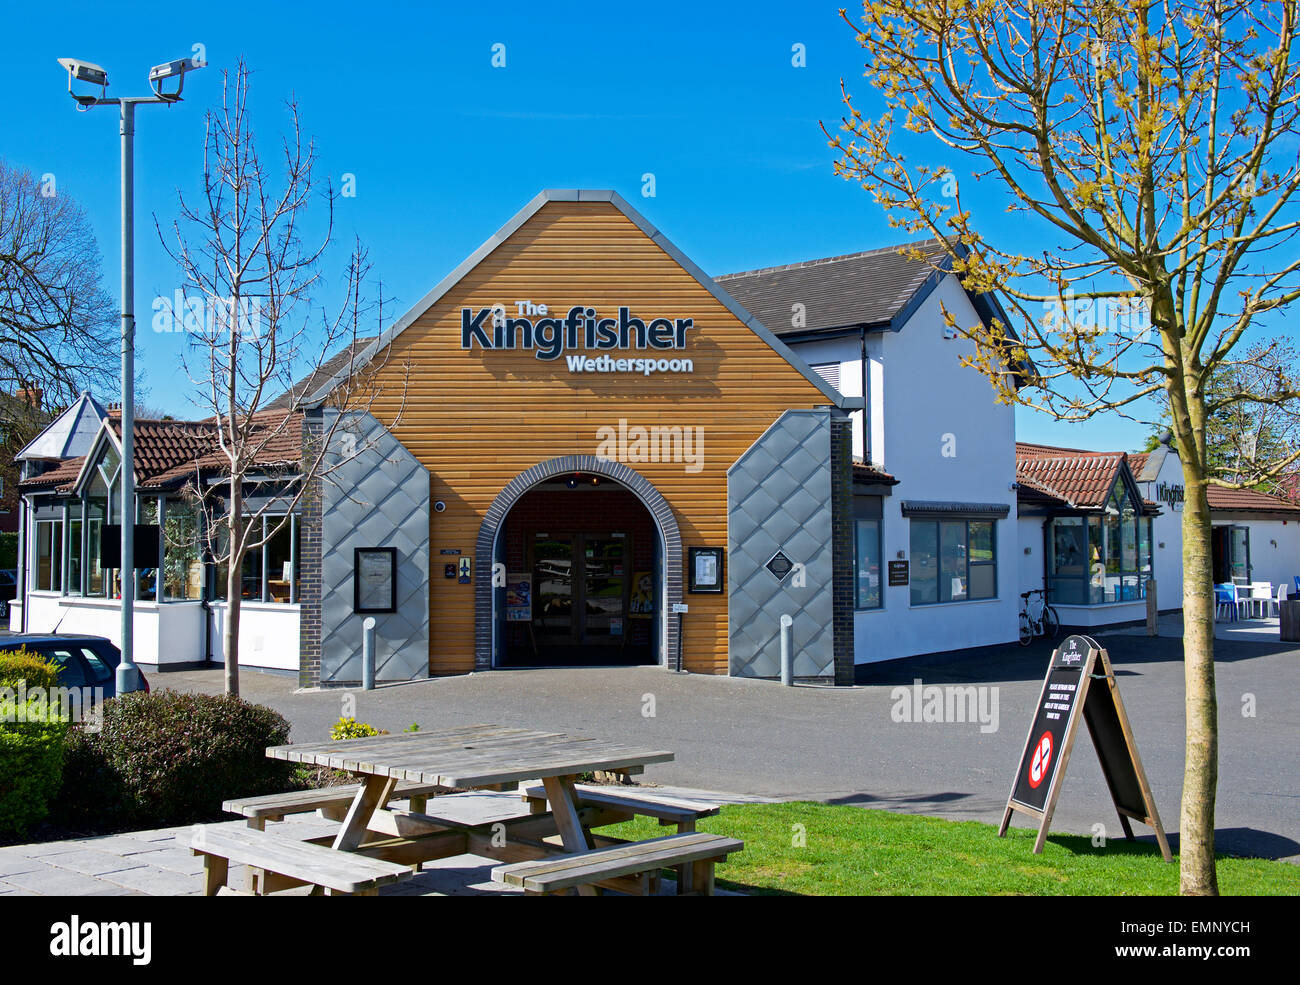 The Kingfisher, a Wetherspoon pub, in Poynton, Cheshire, England UK - Stock Image